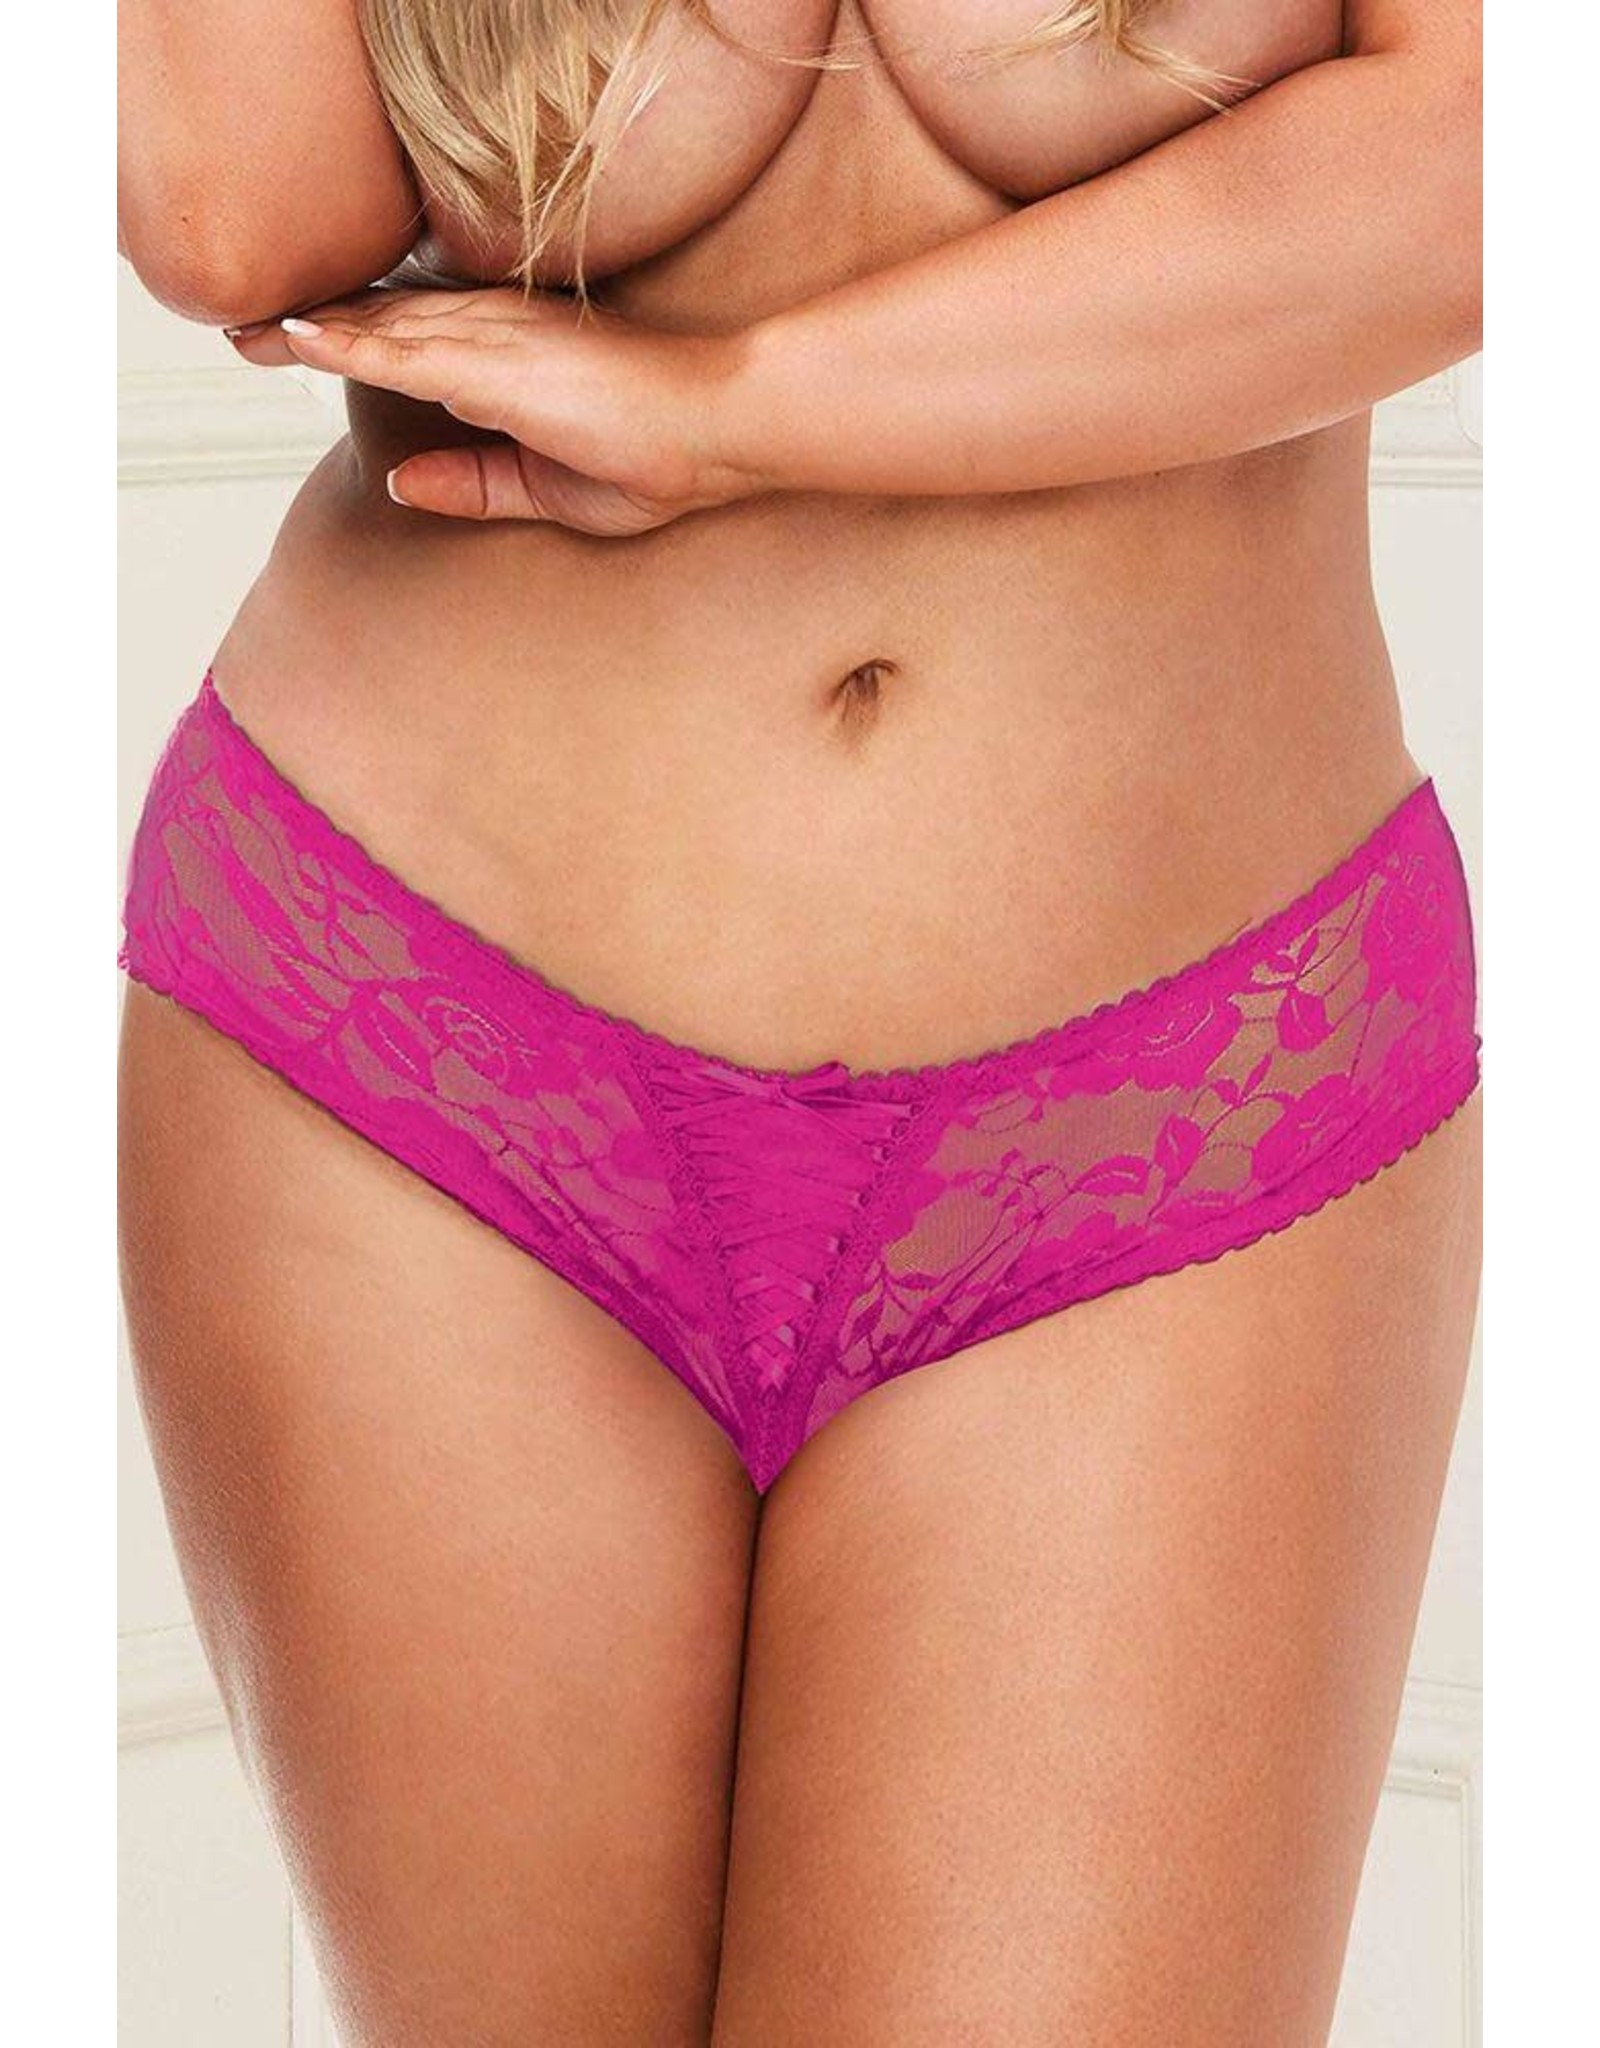 BACI - BEST-LACE SCENARIO CROTCHLESS - HOT PINK - 3X/4X